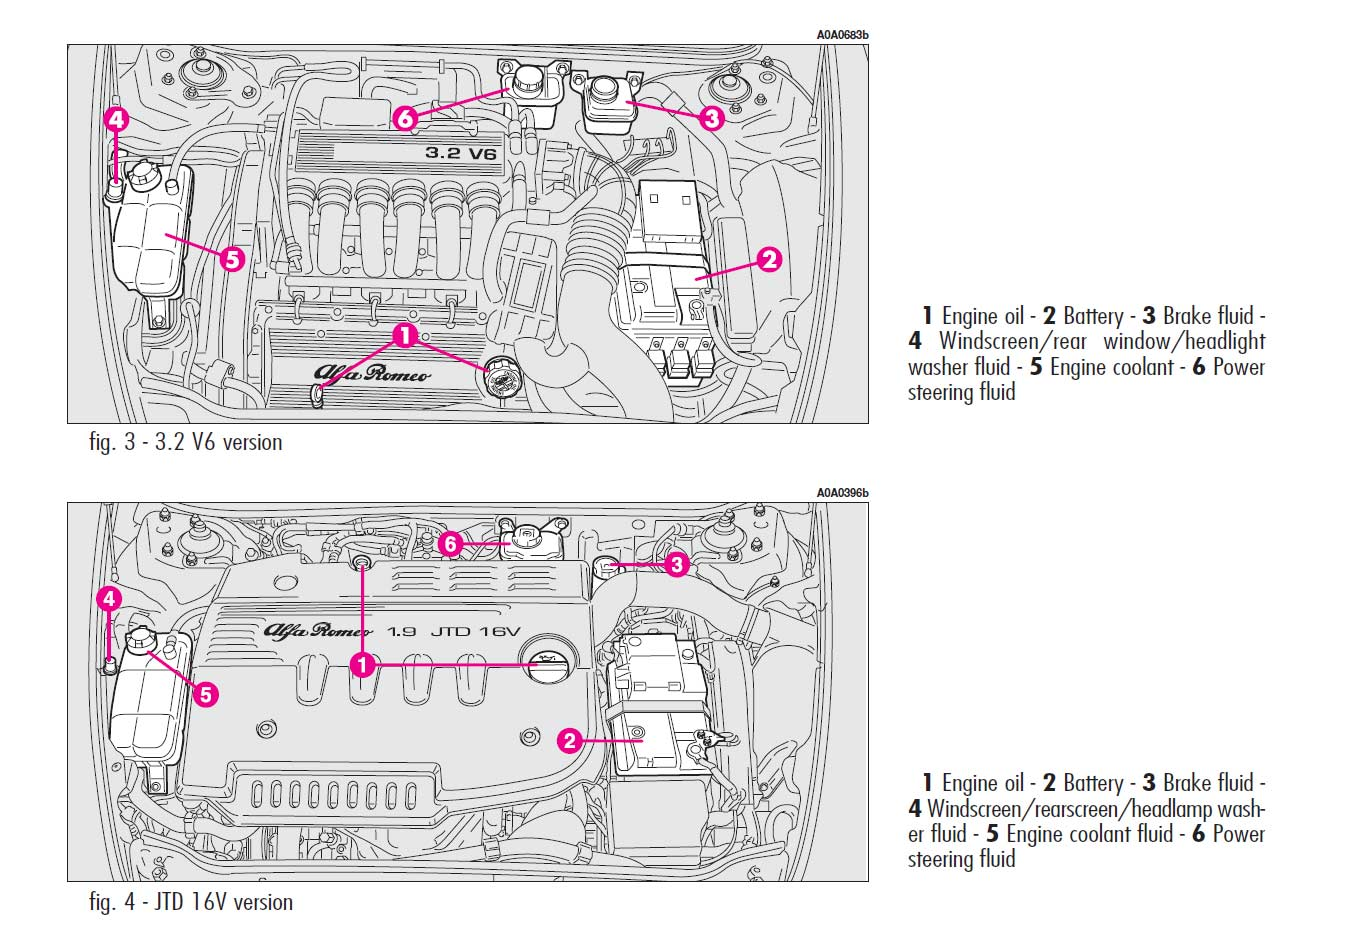 Alfa Romeo 145 Fuse Box Diagram All Kind Of Wiring Diagrams 83 Diy Enthusiasts Gt 30 Images Mifinder Co 19 Tdi 147